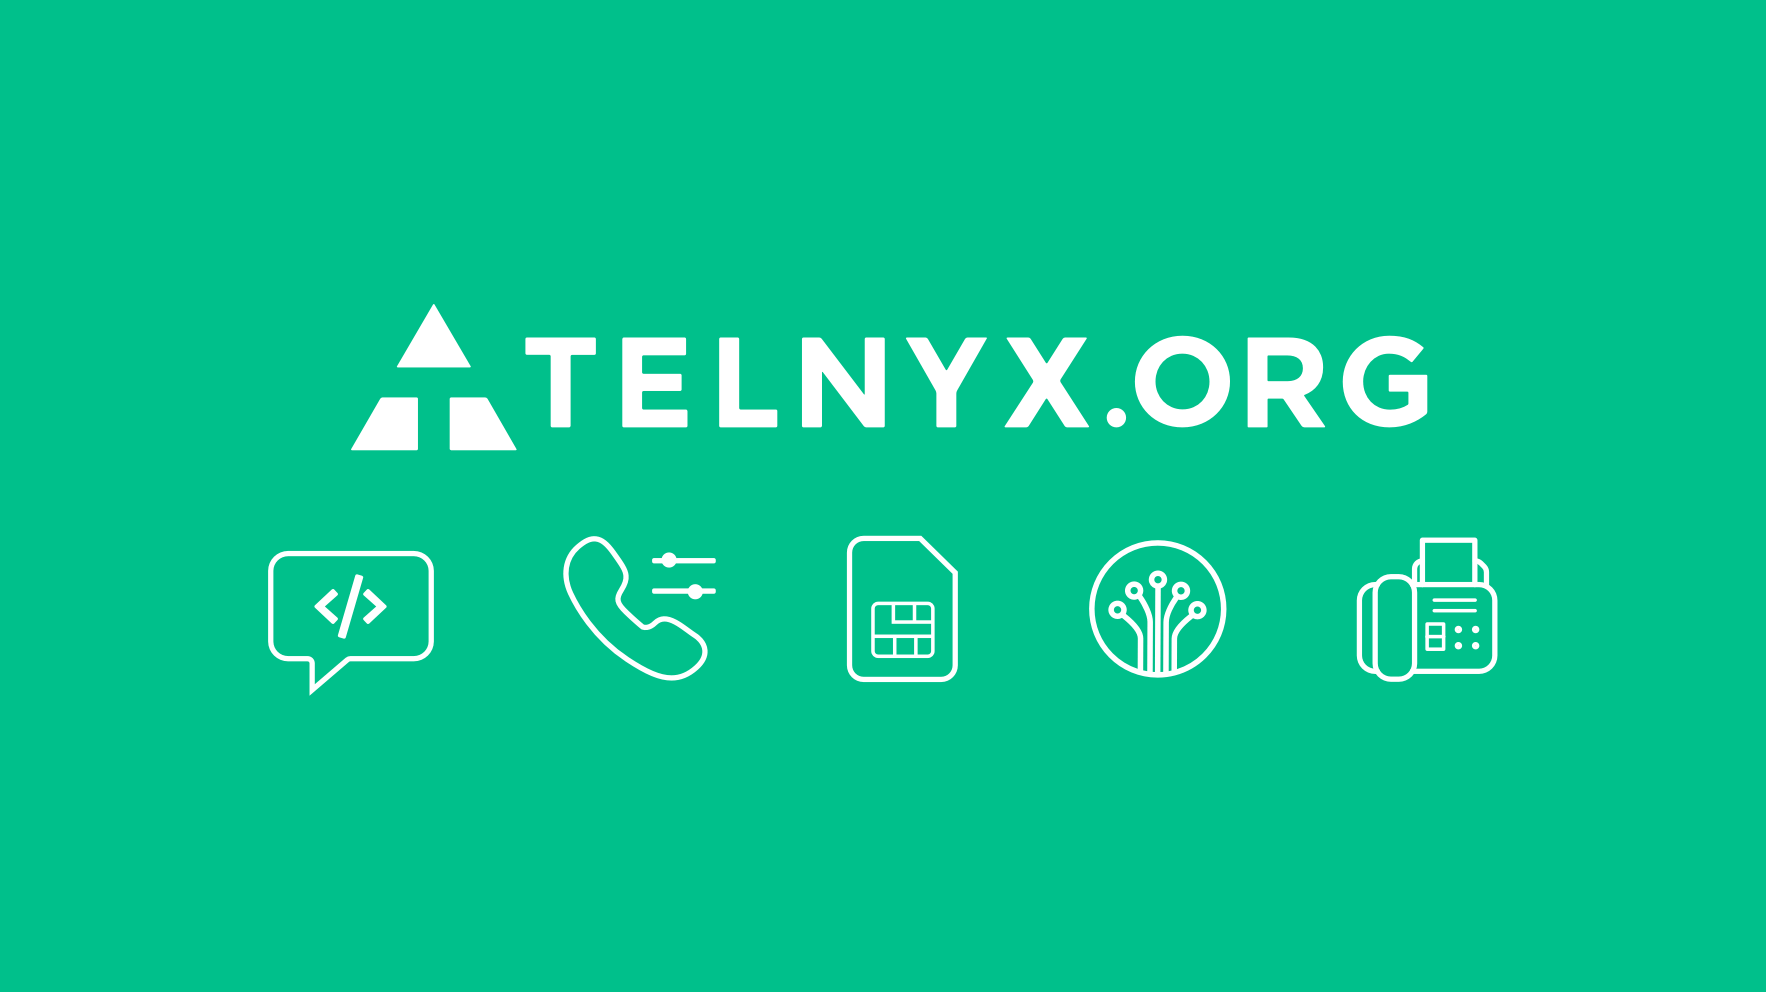 Telnyx.org impact initiative